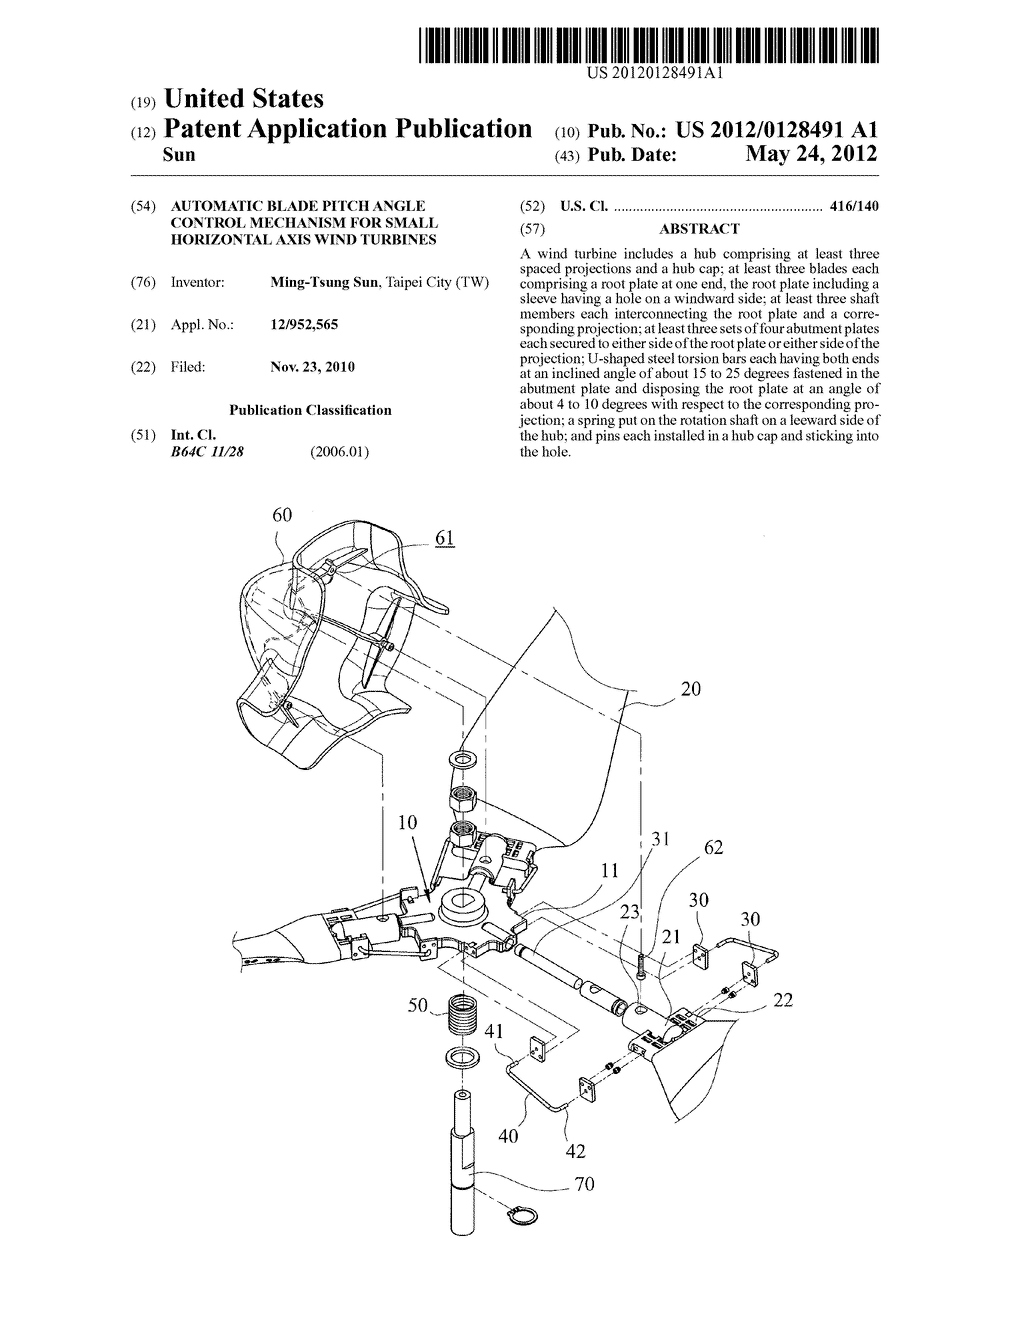 Automatic Blade Pitch Angle Control Mechanism For Small Horizontal Wind Power Turbine Diagram Axis Turbines Schematic And Image 01